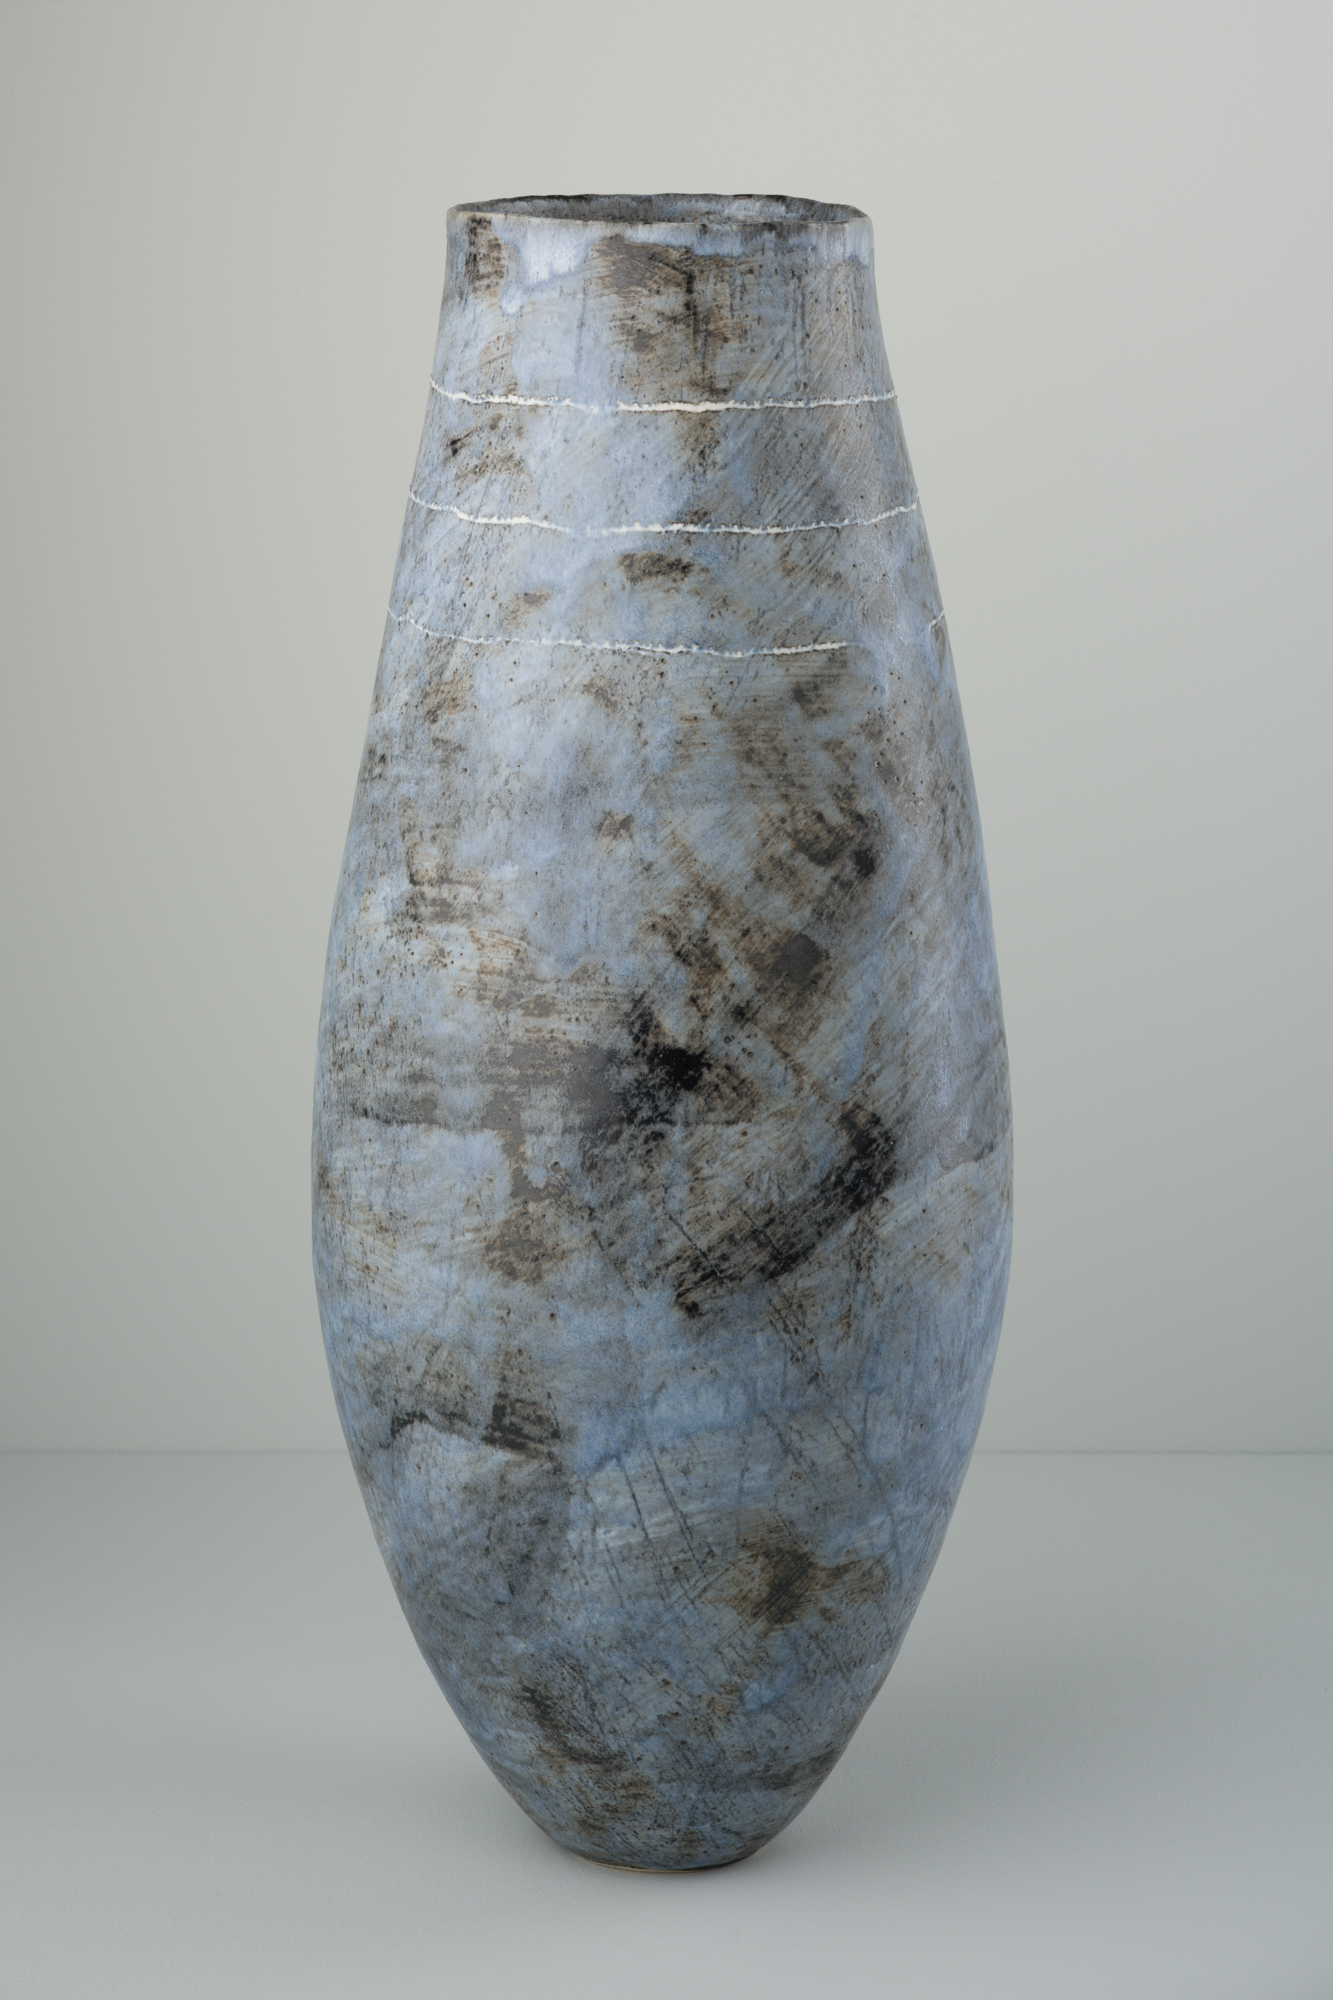 Tall Indigo Vessel  ceramic  49 x 20 x 20cm  £560